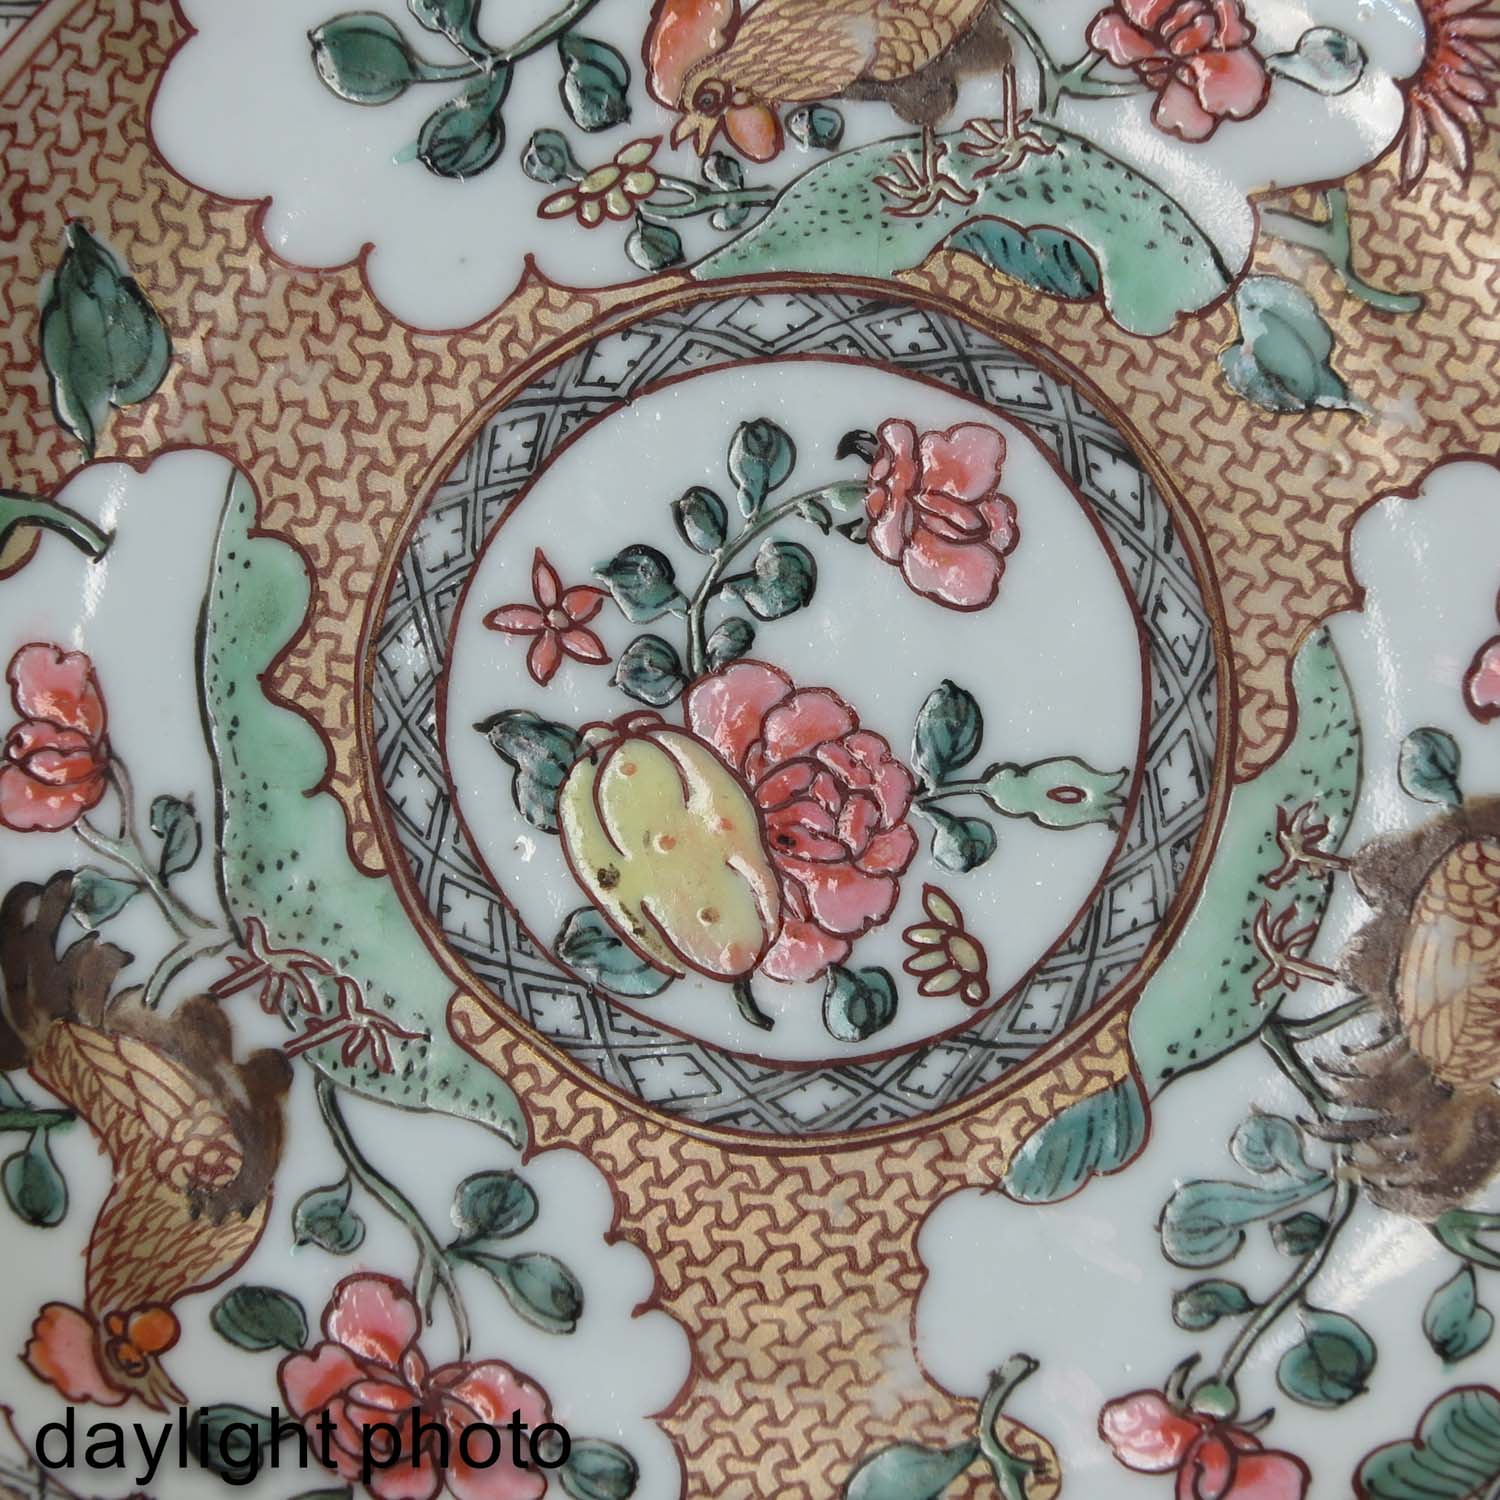 A Rooster Decor Cup and Saucer - Image 10 of 10